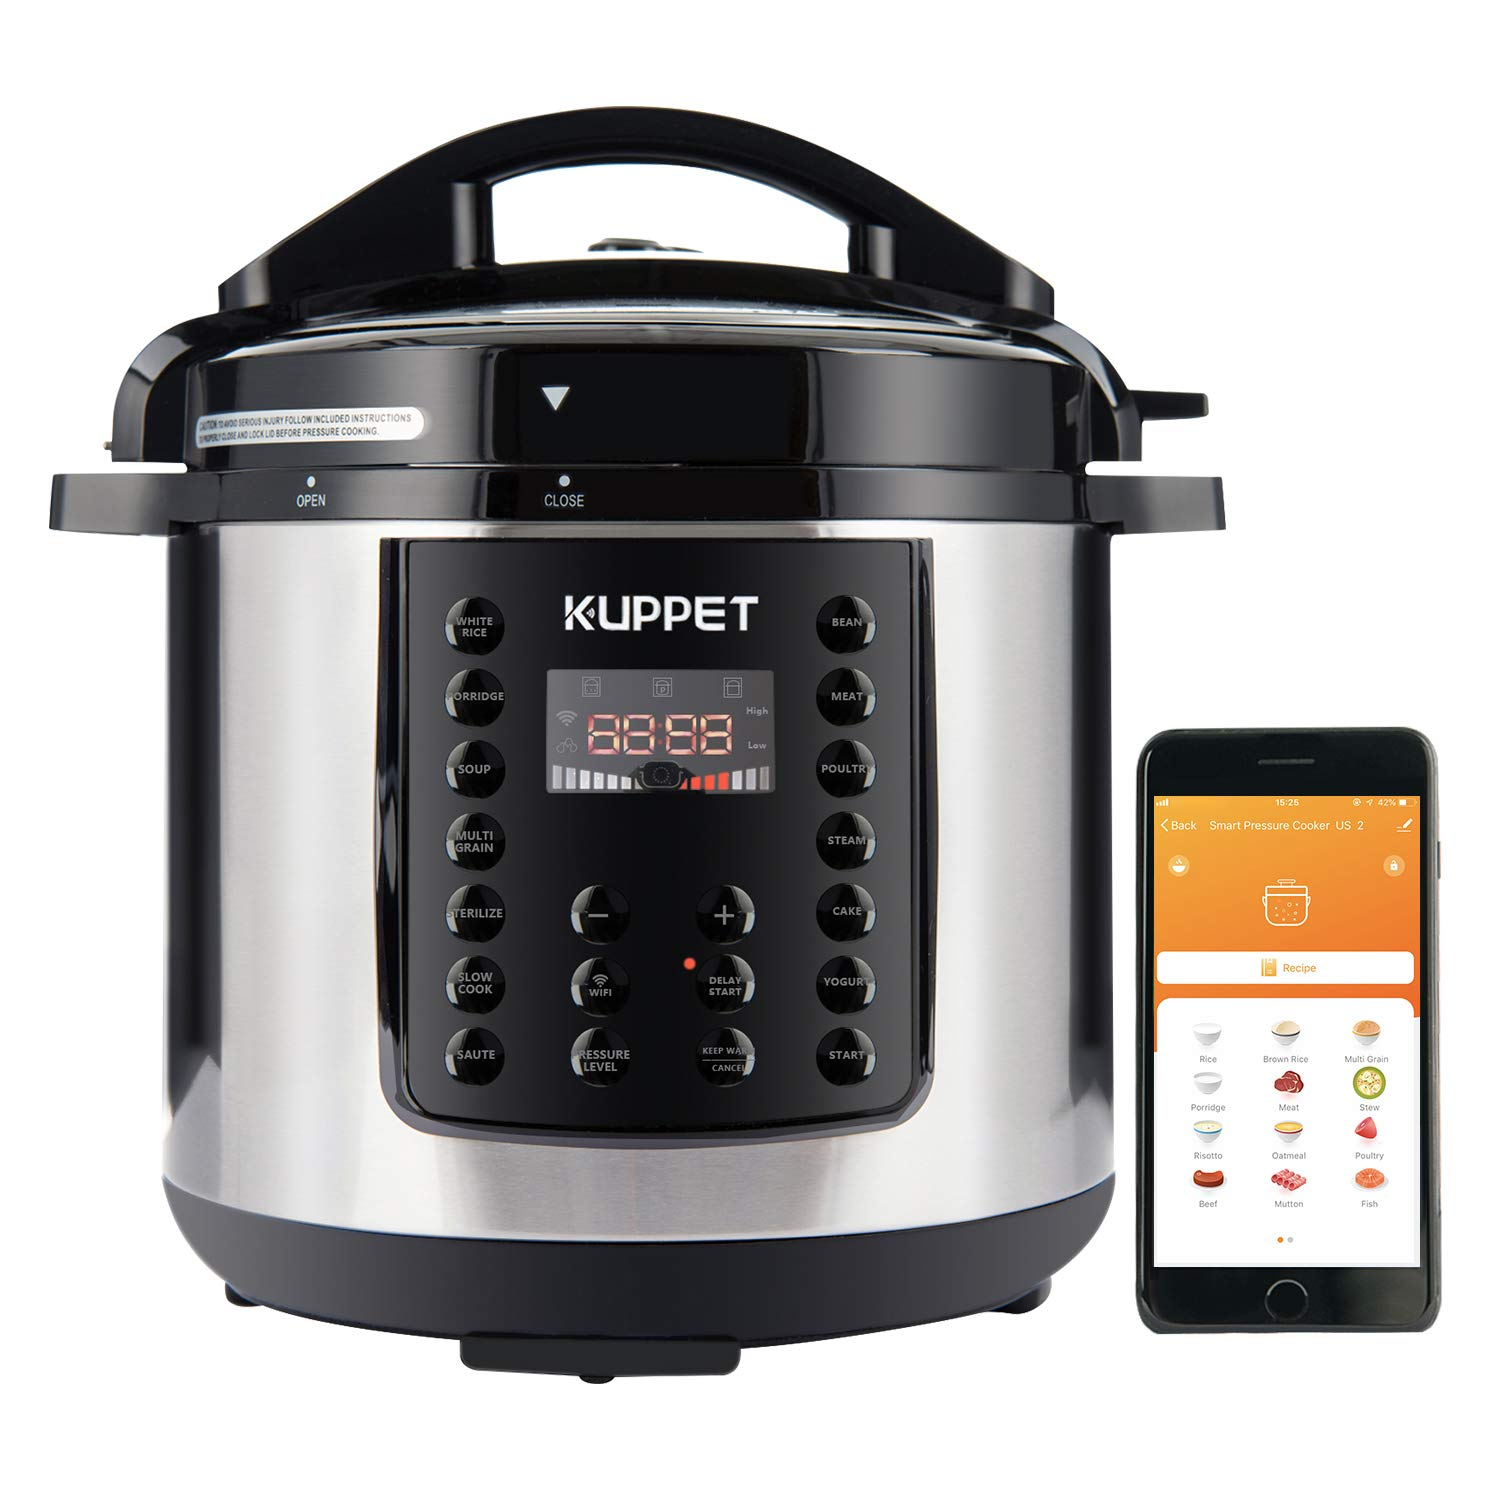 KUPPET MultiPot 10-IN-1 Smart WiFi Multi use Electric Pressure cooker, 6 Qt Programmable Multi Cooker, Rice Cooker, Slow Cooker, Steamer, Saute, Warmer, Bluetooth and WiFi, 1000W, Stainless Steel